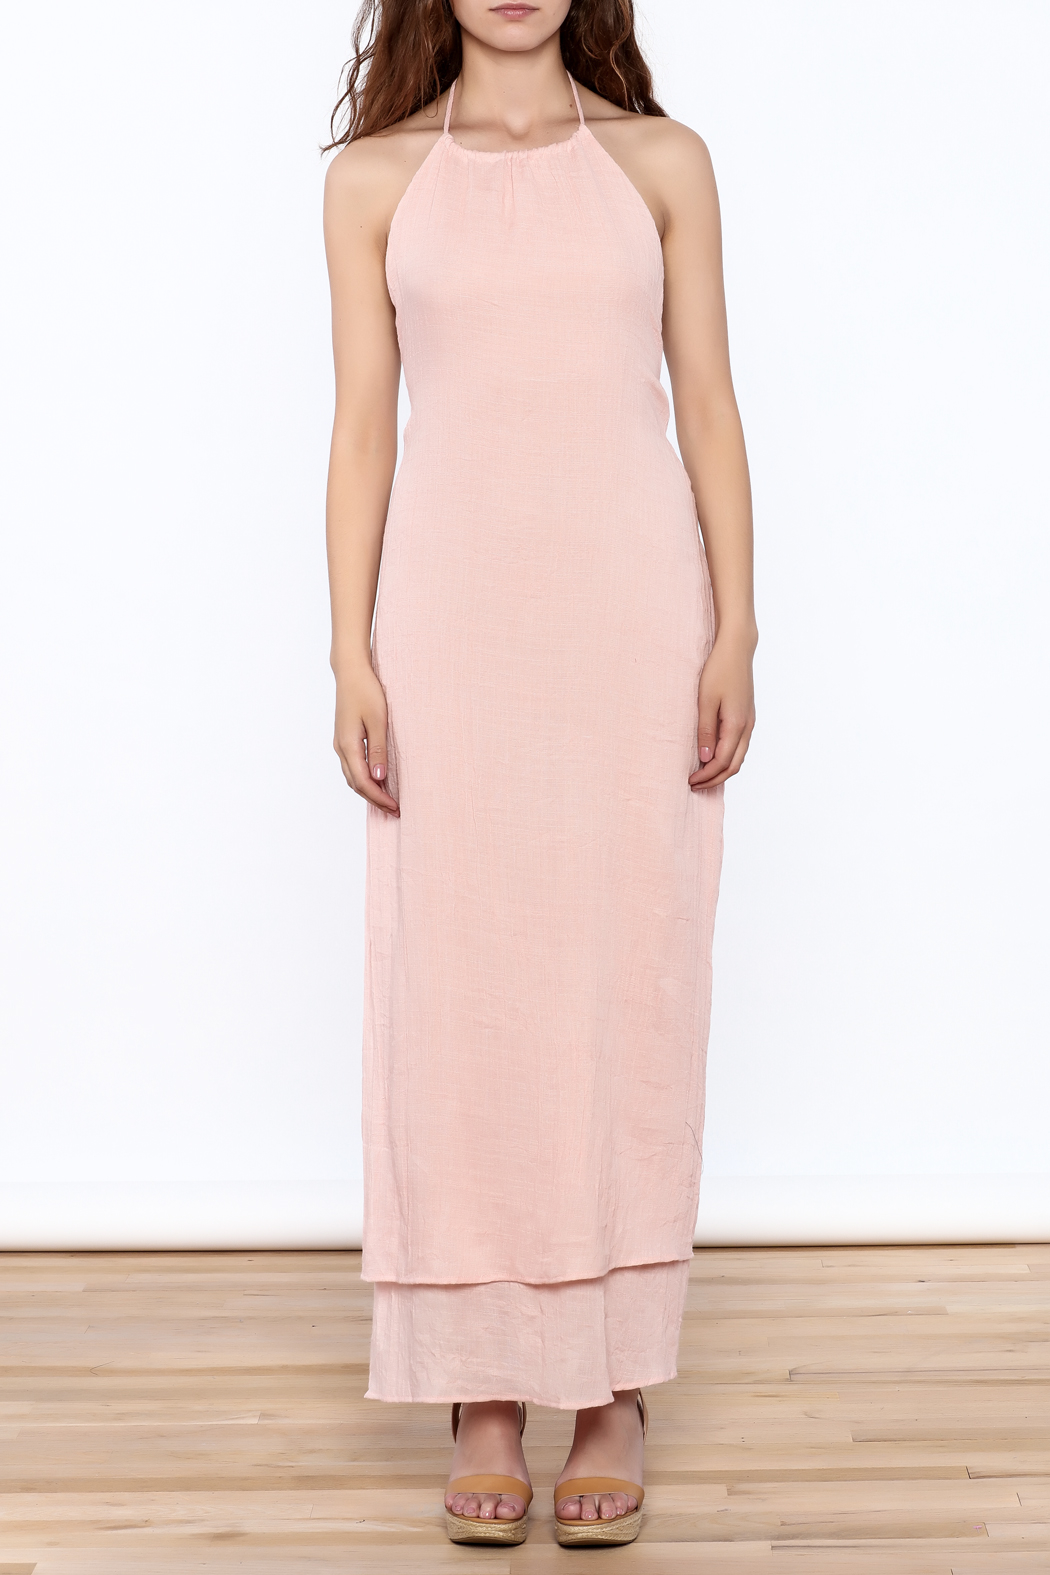 Solemio Pink Halter Maxi Dress - Front Cropped Image